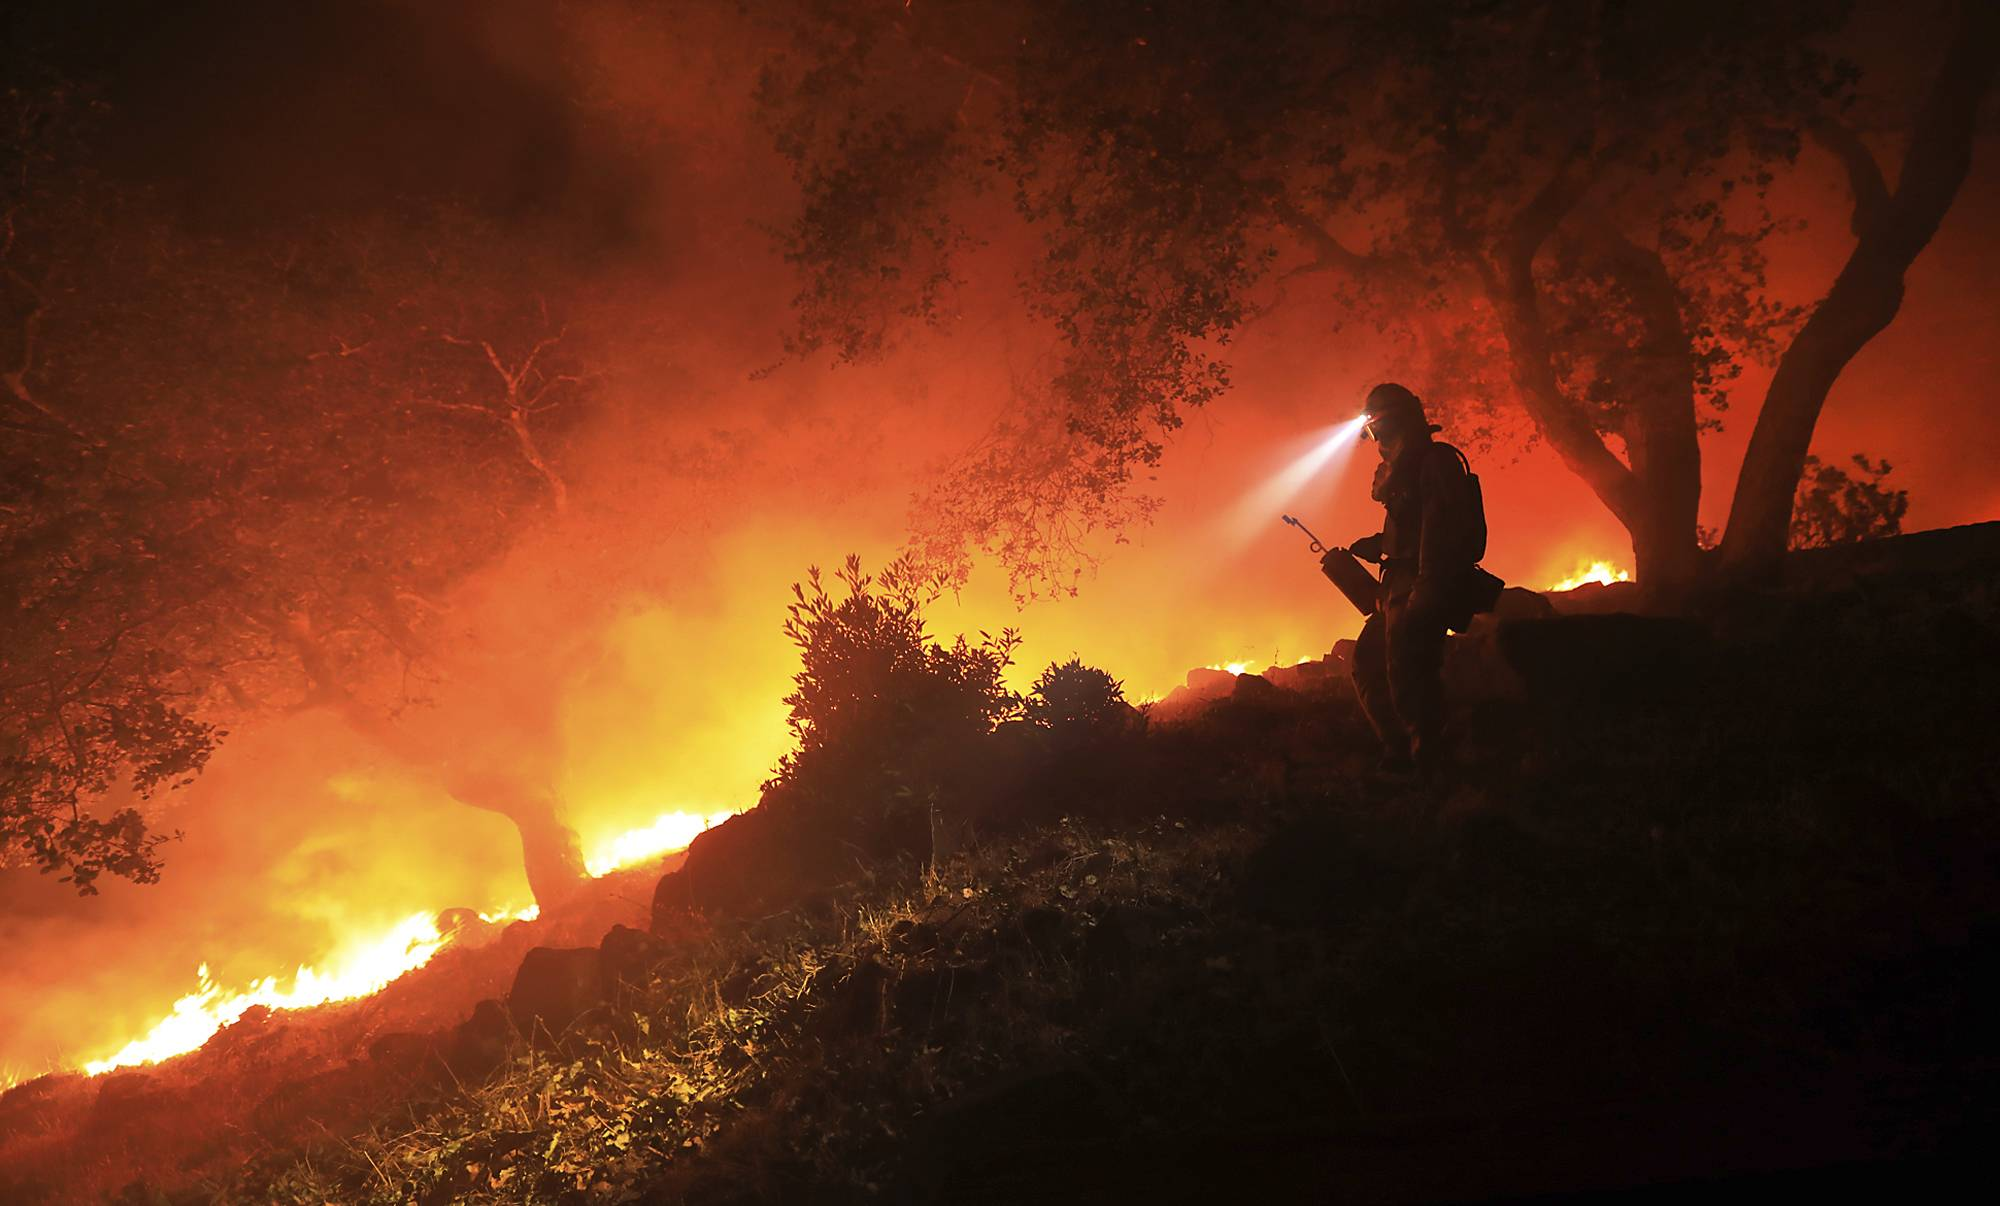 A San Diego Cal Fire firefighter monitors a flare up on a the head of a wildfire (the Southern LNU Complex), off of High Road above the Sonoma Valley, Wednesday Oct. 11, 2017, in Sonoma, Calif. A wind shift caused flames to move quickly up hill and threaten homes in the area. Three days after the fires began, firefighters were still unable to gain control of the blazes that had turned entire Northern California neighborhoods to ash and destroyed thousands of homes and businesses.